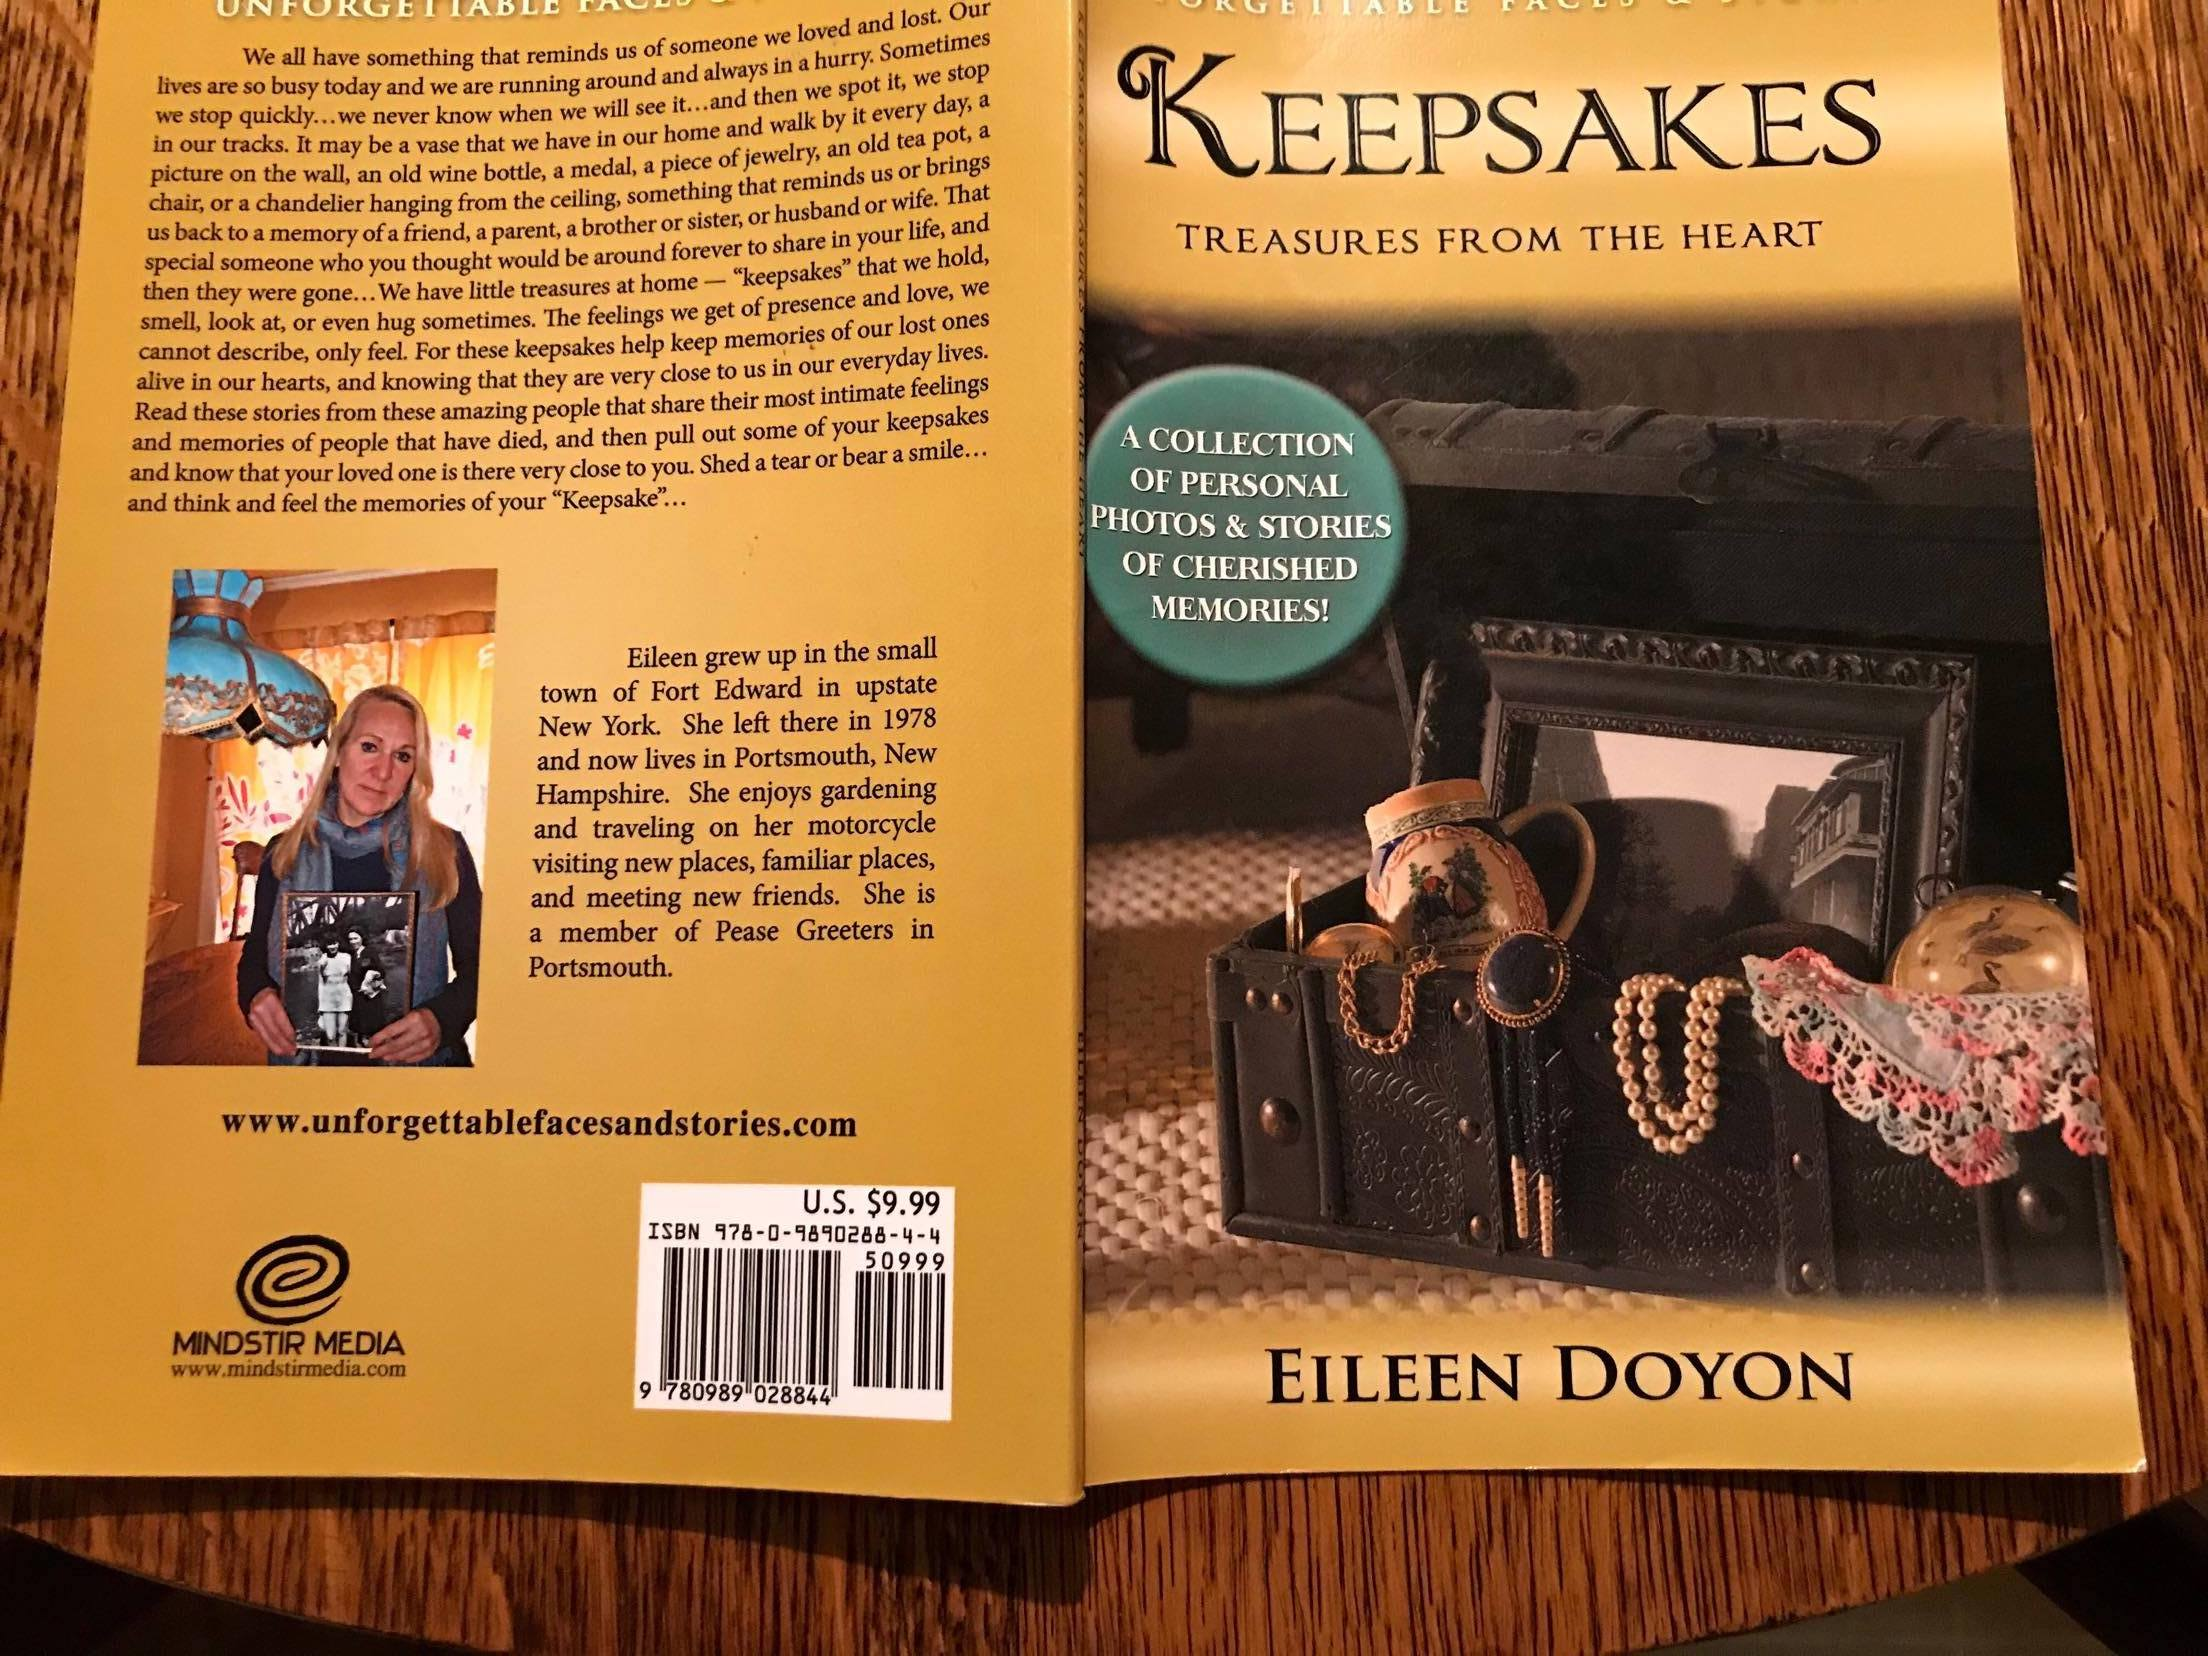 Keepsakes: Treasures From the Heart | Unforgettable Faces & Stories